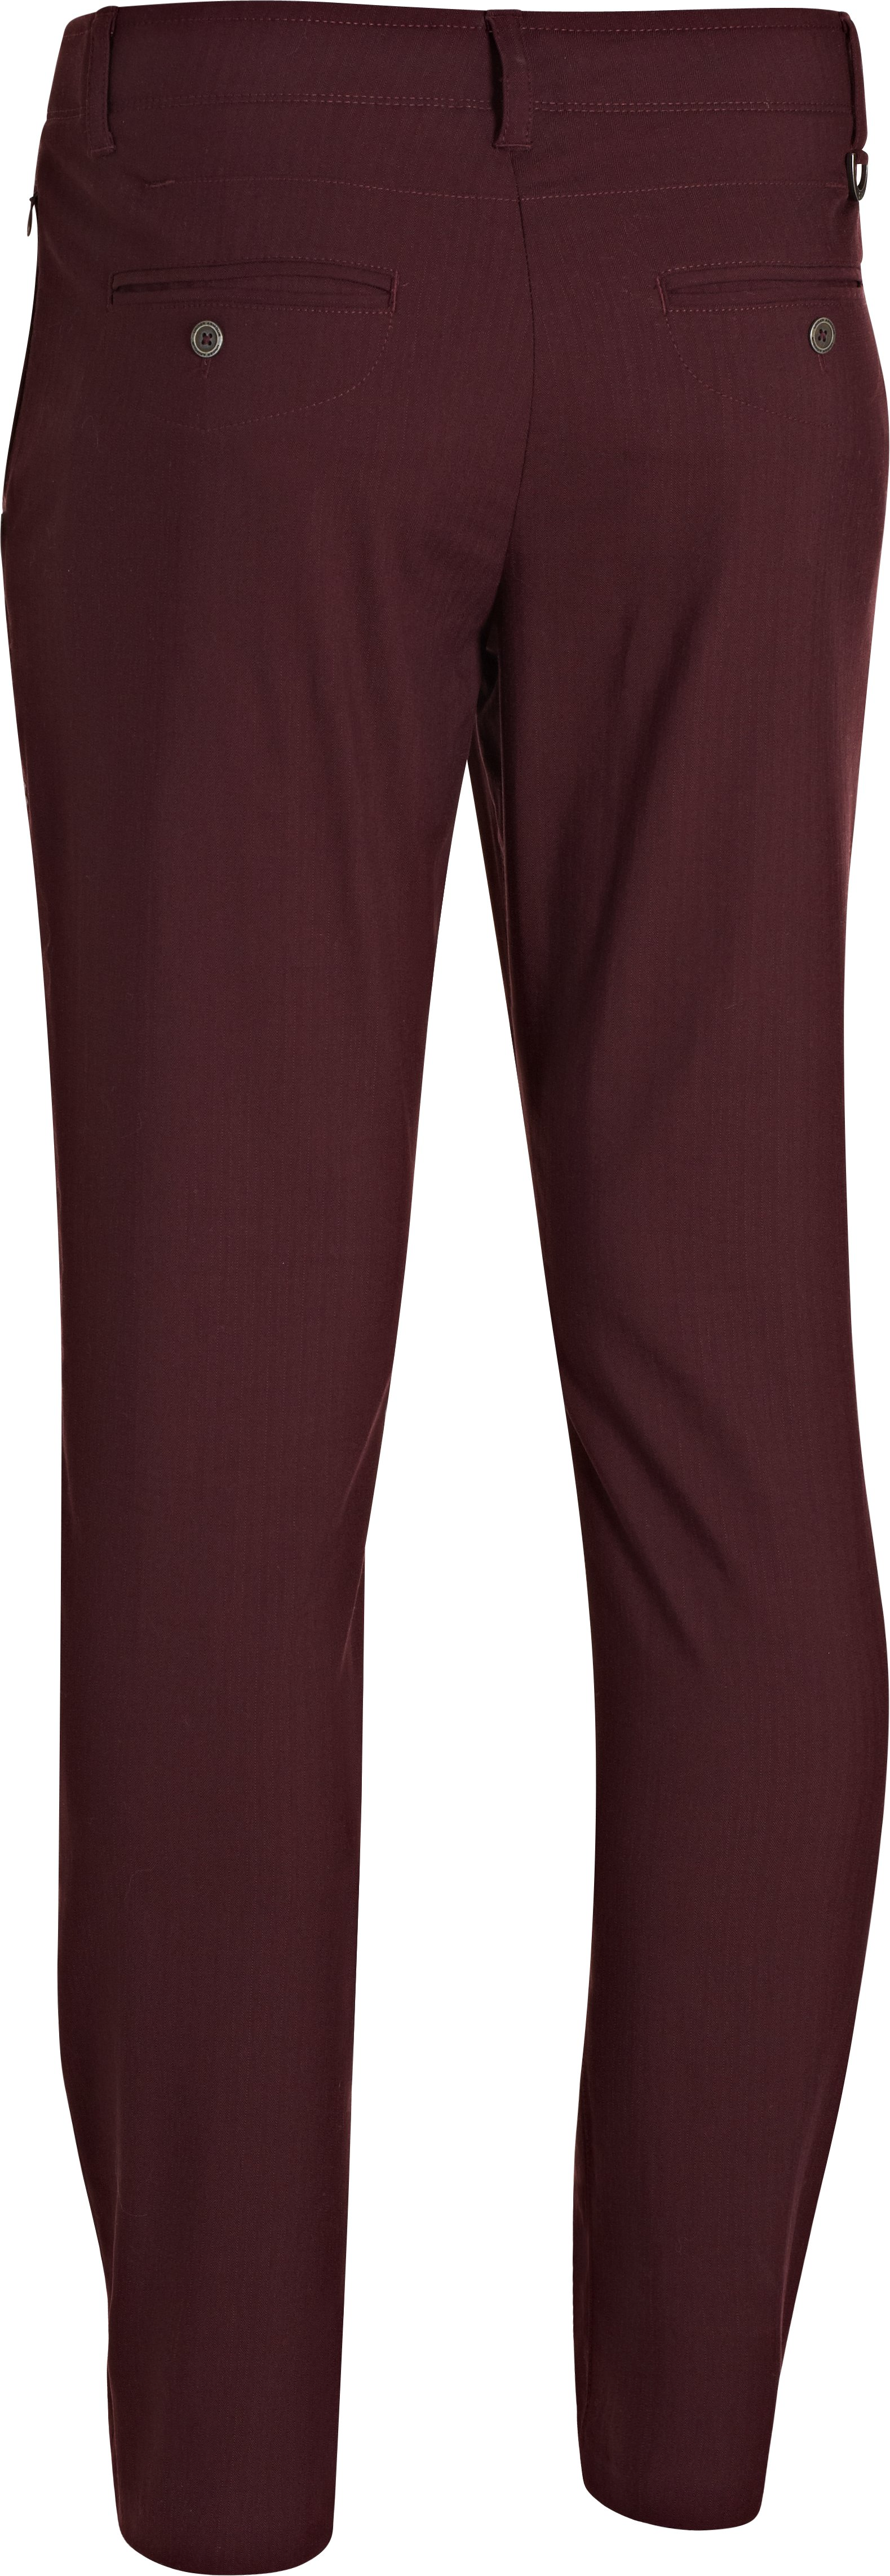 Men's UA Performance Chino – Tapered Leg, Ox Blood, undefined